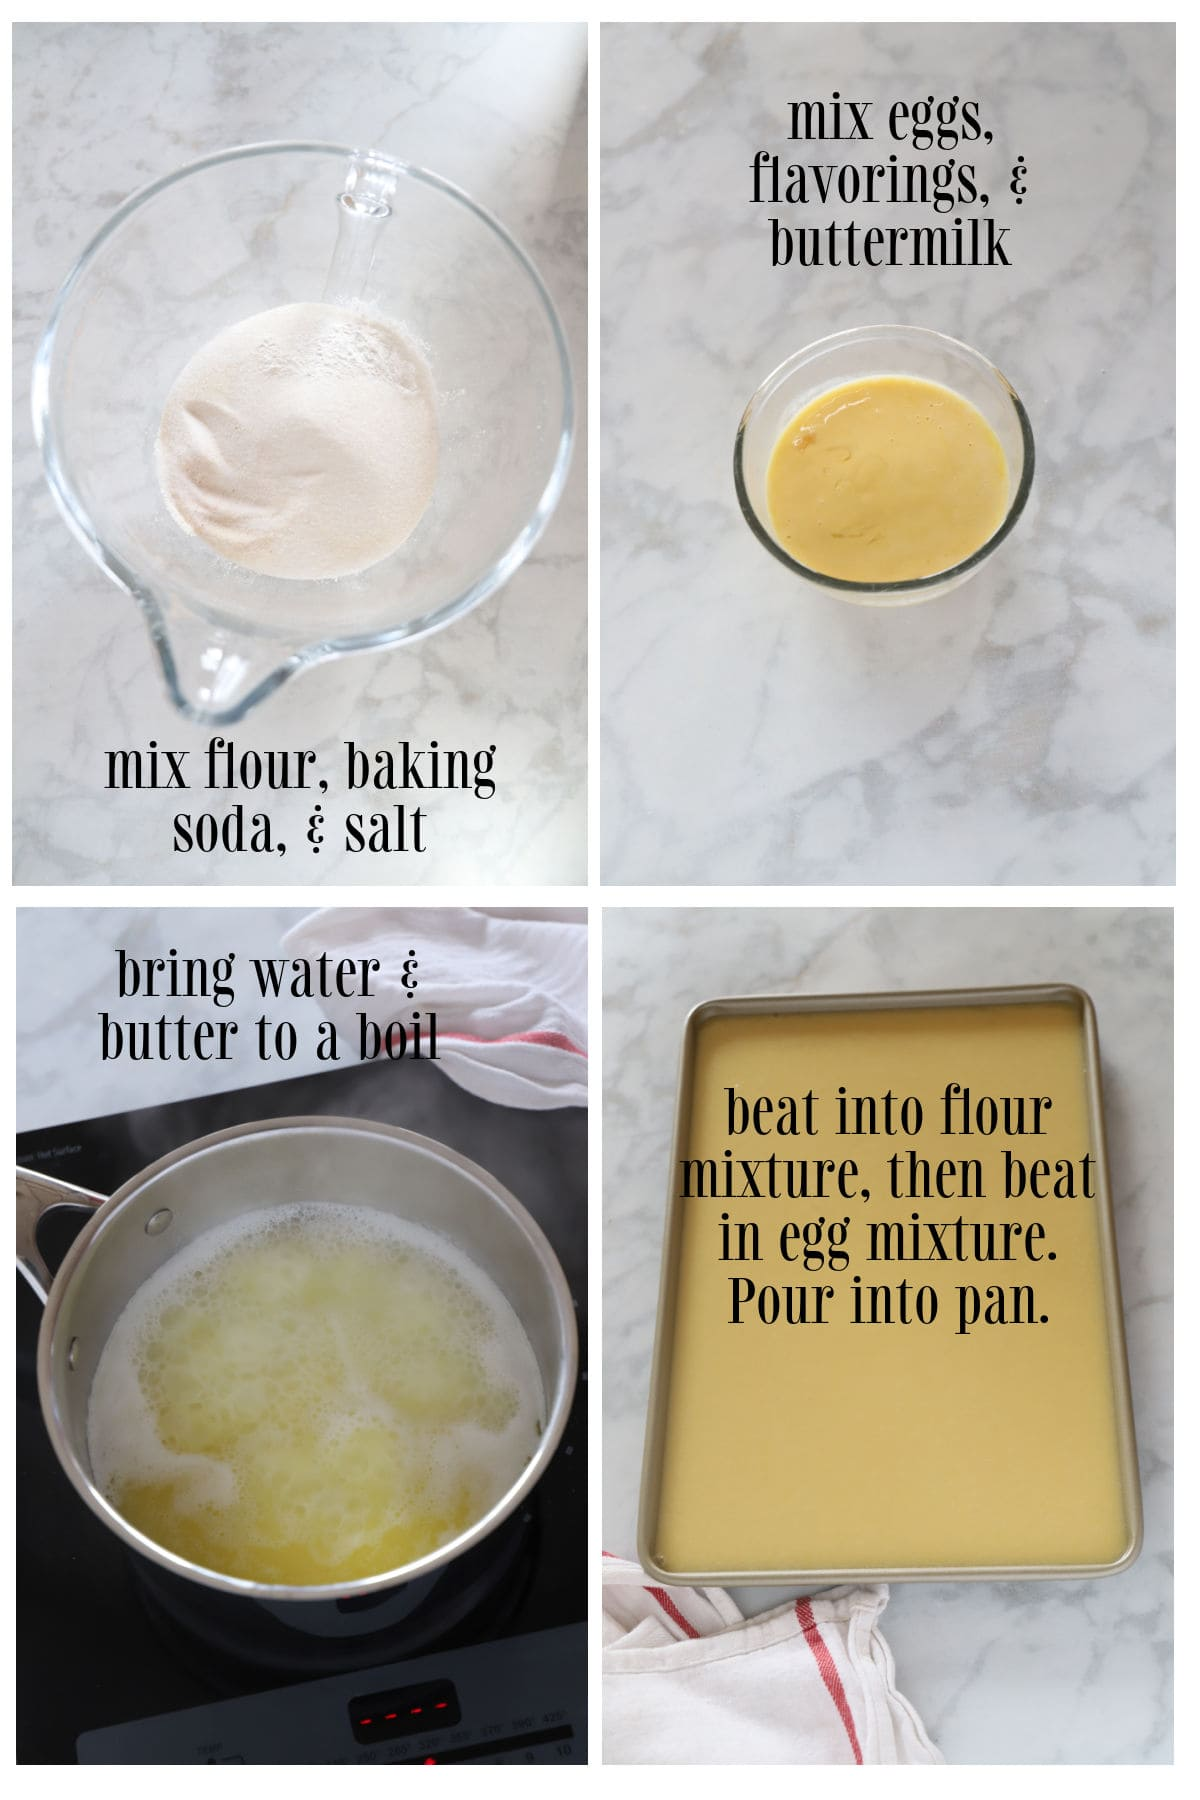 Step by step images for making white Texas sheet cake.